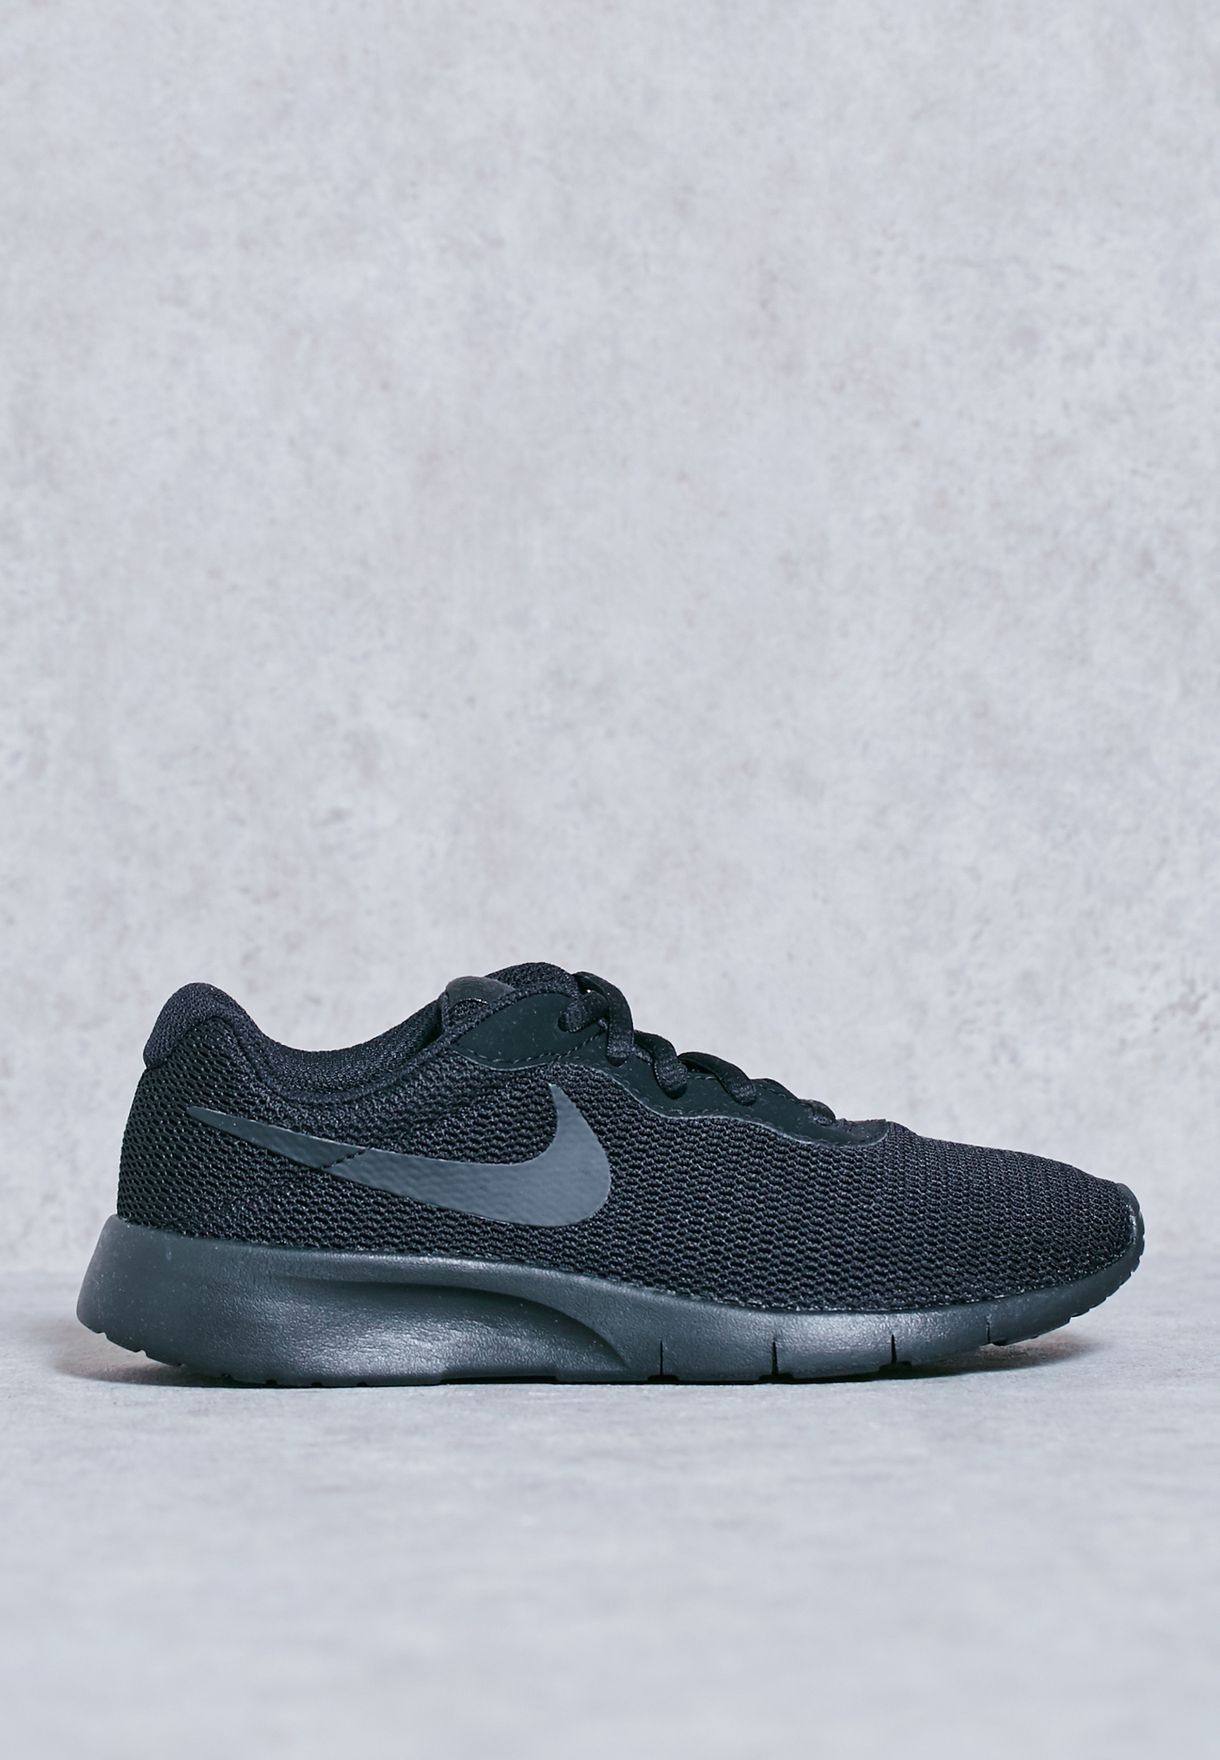 new product 174b4 96bfa ... athletic shoes 1256e ac697  coupon code for shop nike black tanjun youth  818381 001 for kids in kuwait ni727sh18ejh 43a78